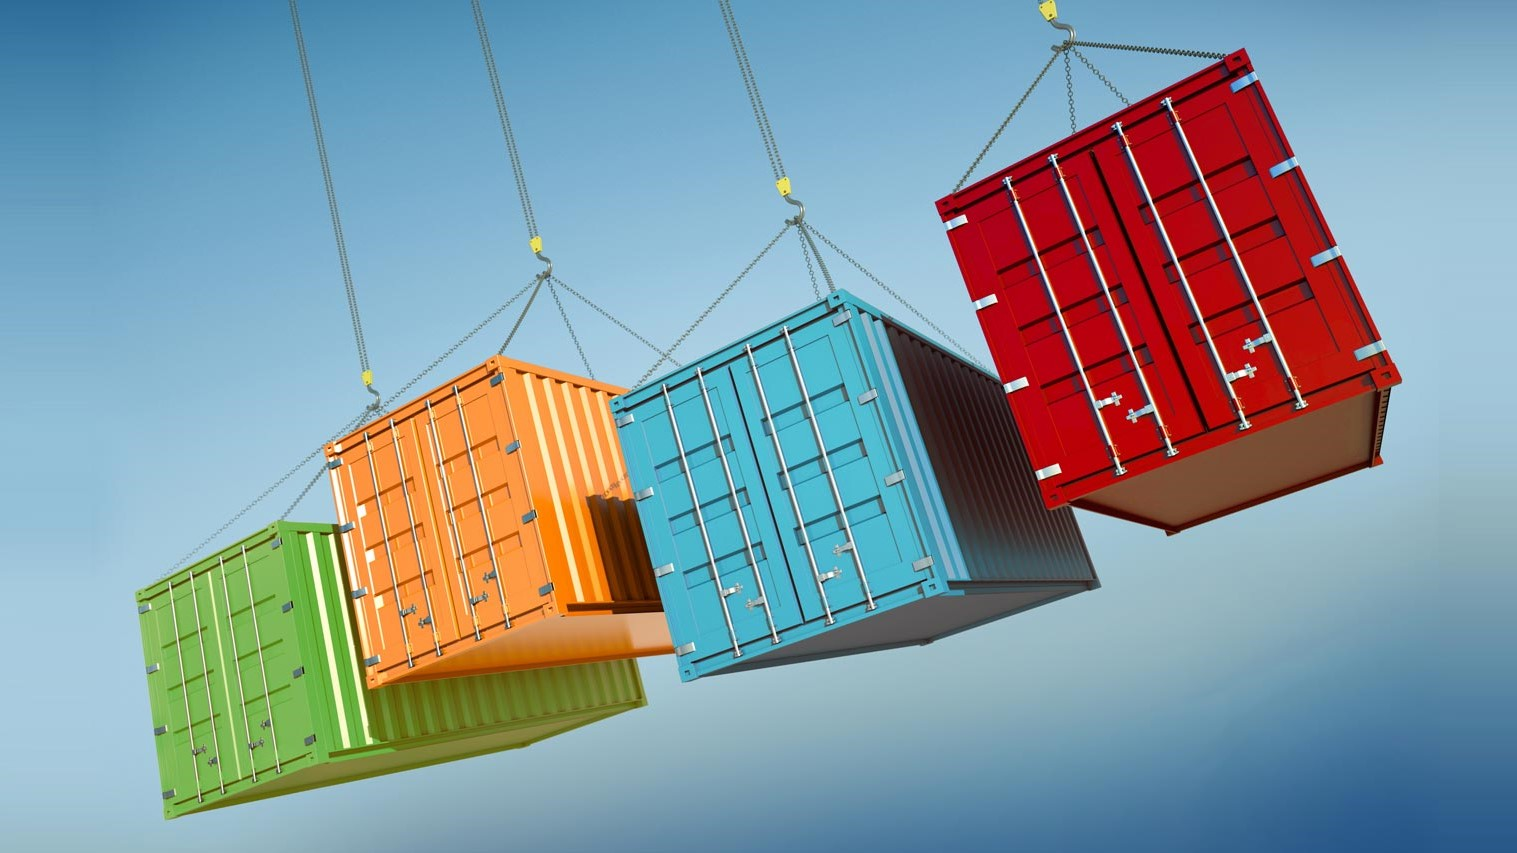 Container manufacturers facing tough times as prices tumble 1